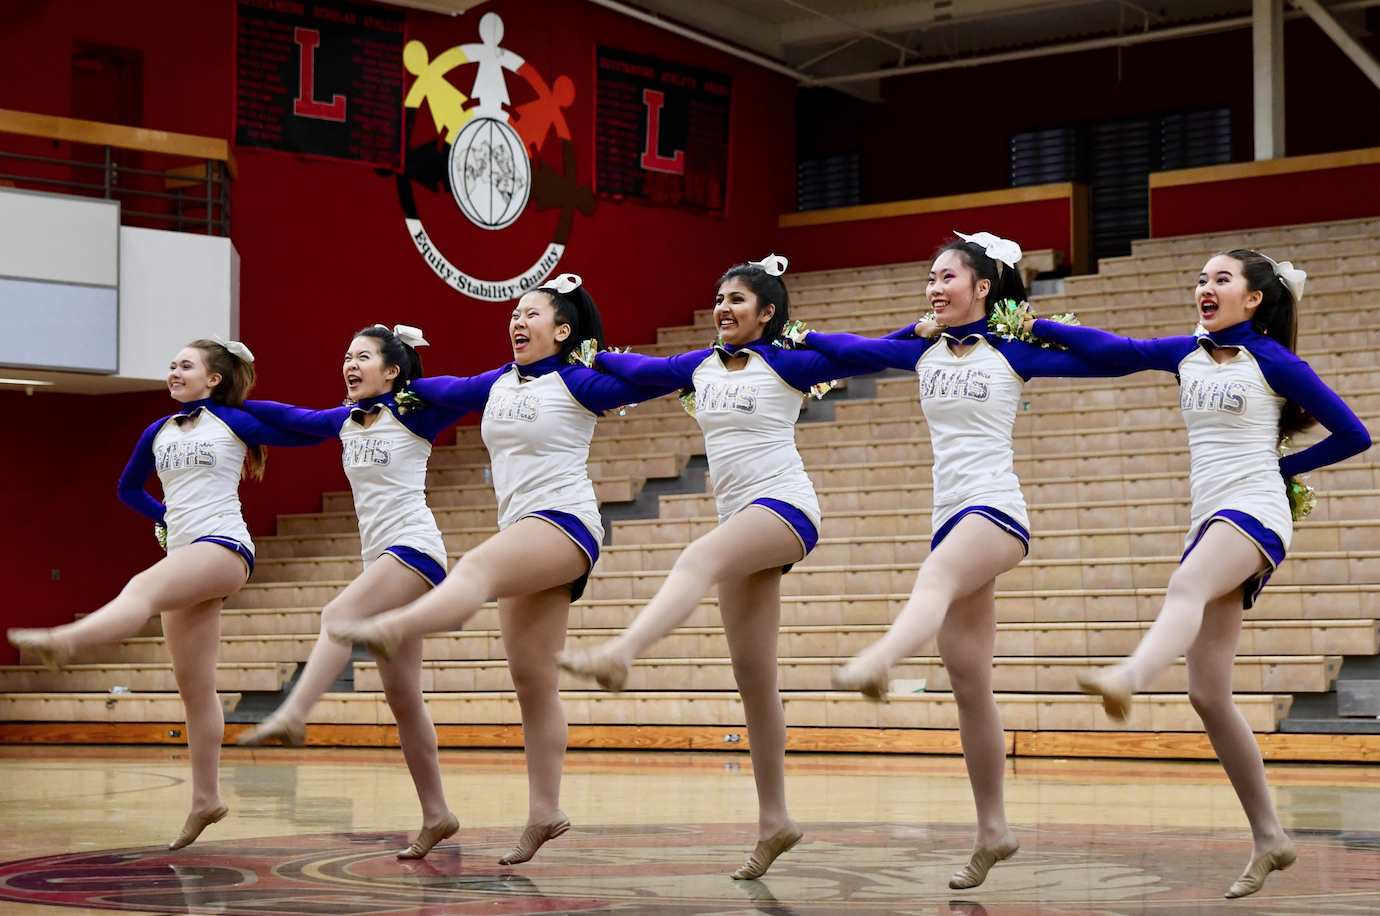 The song team performs at James Logan HS on December 2. Their goal for this performance, according to senior captain Madi Anderson-Au, was to gain experience and improve their routine using feedback from the judges. Photo by Om Khandekar.